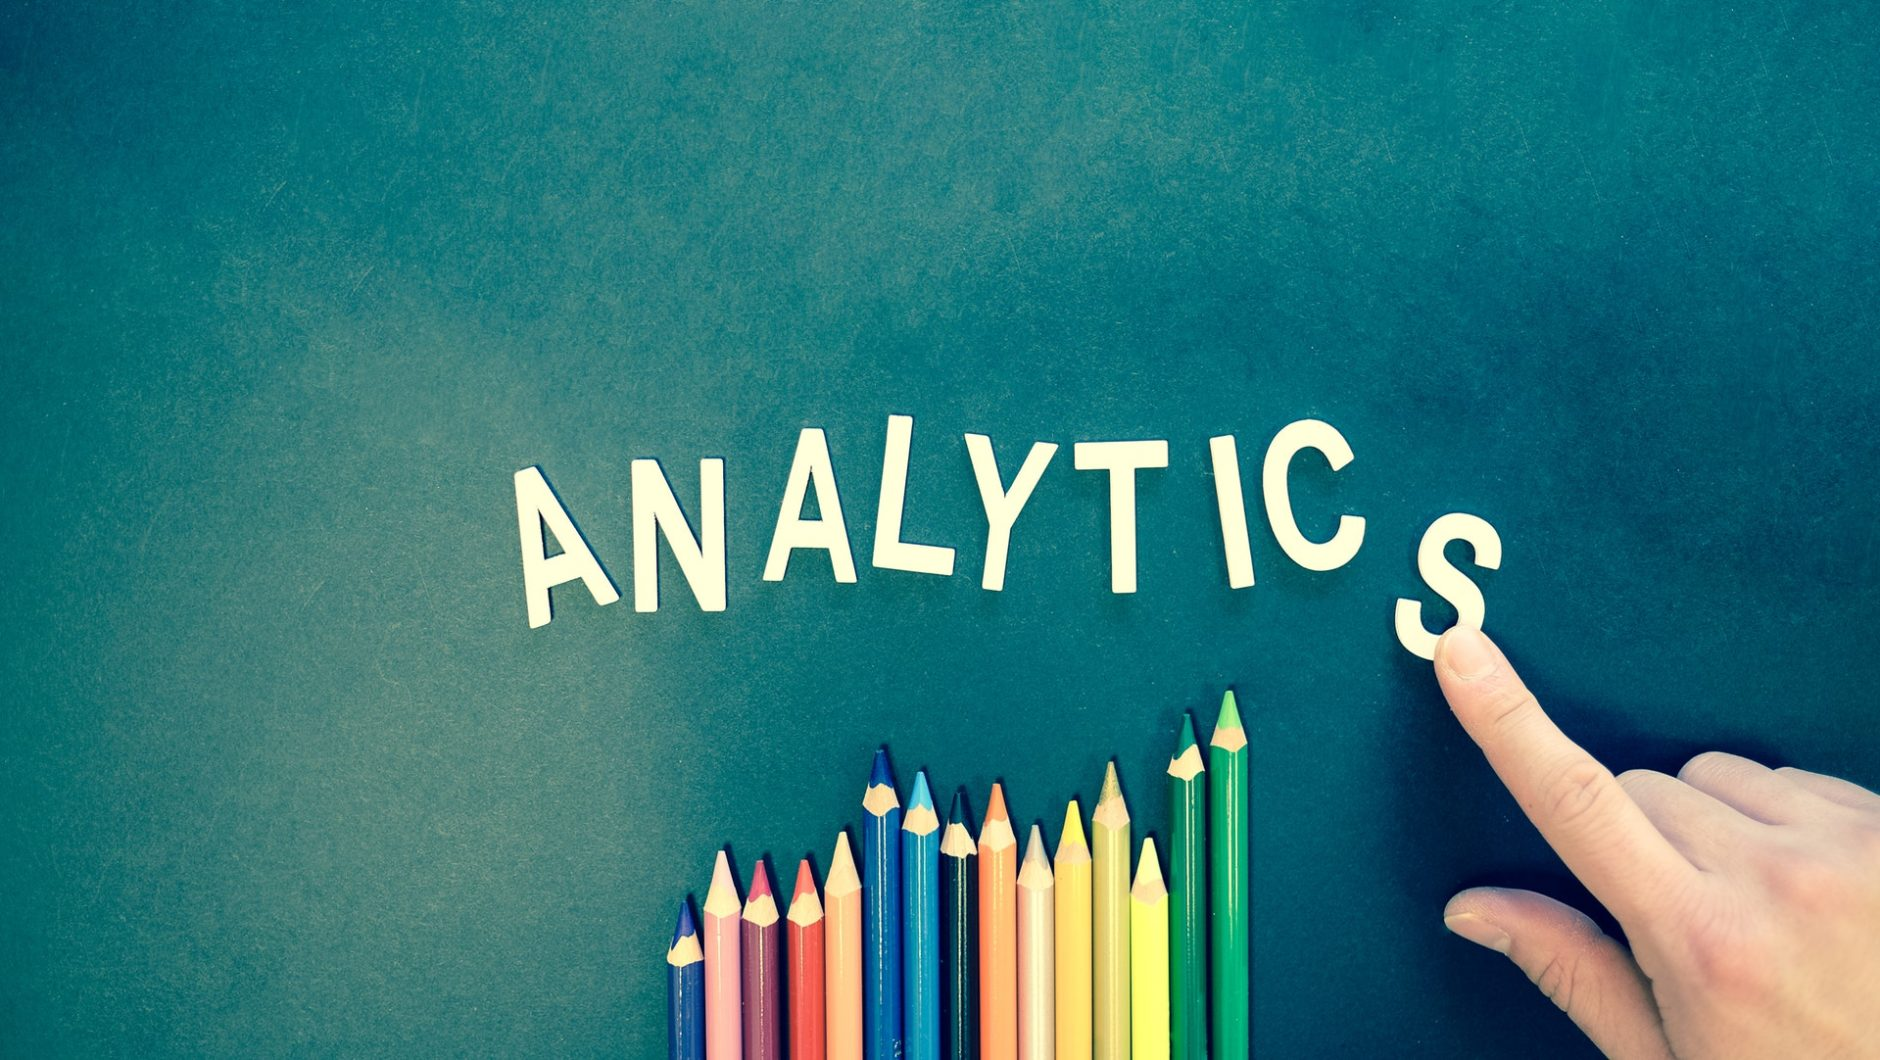 Amazon Brand Analytics: Was ist das?